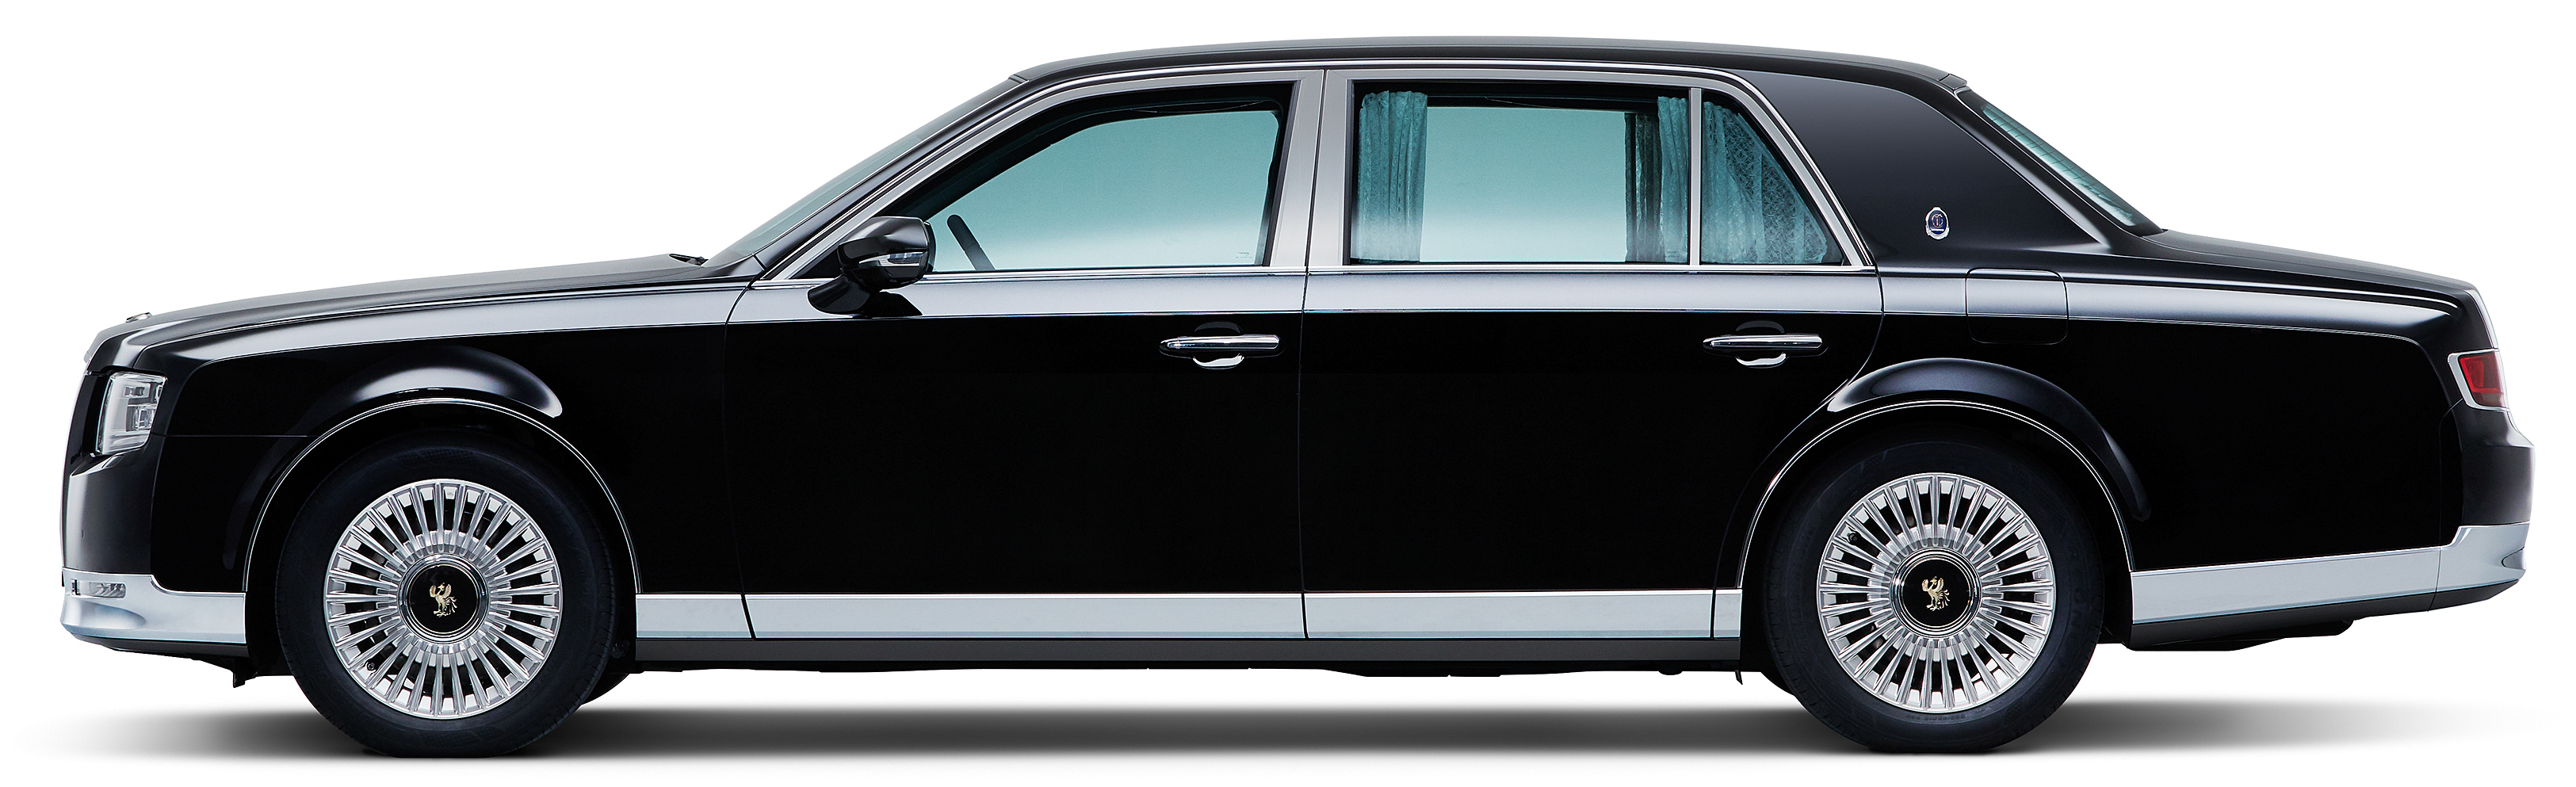 2018 toyota century. interesting century 2018 toyota century revealed ahead of tokyo debut u2013 japanese sclass drops  v12 for in toyota century n